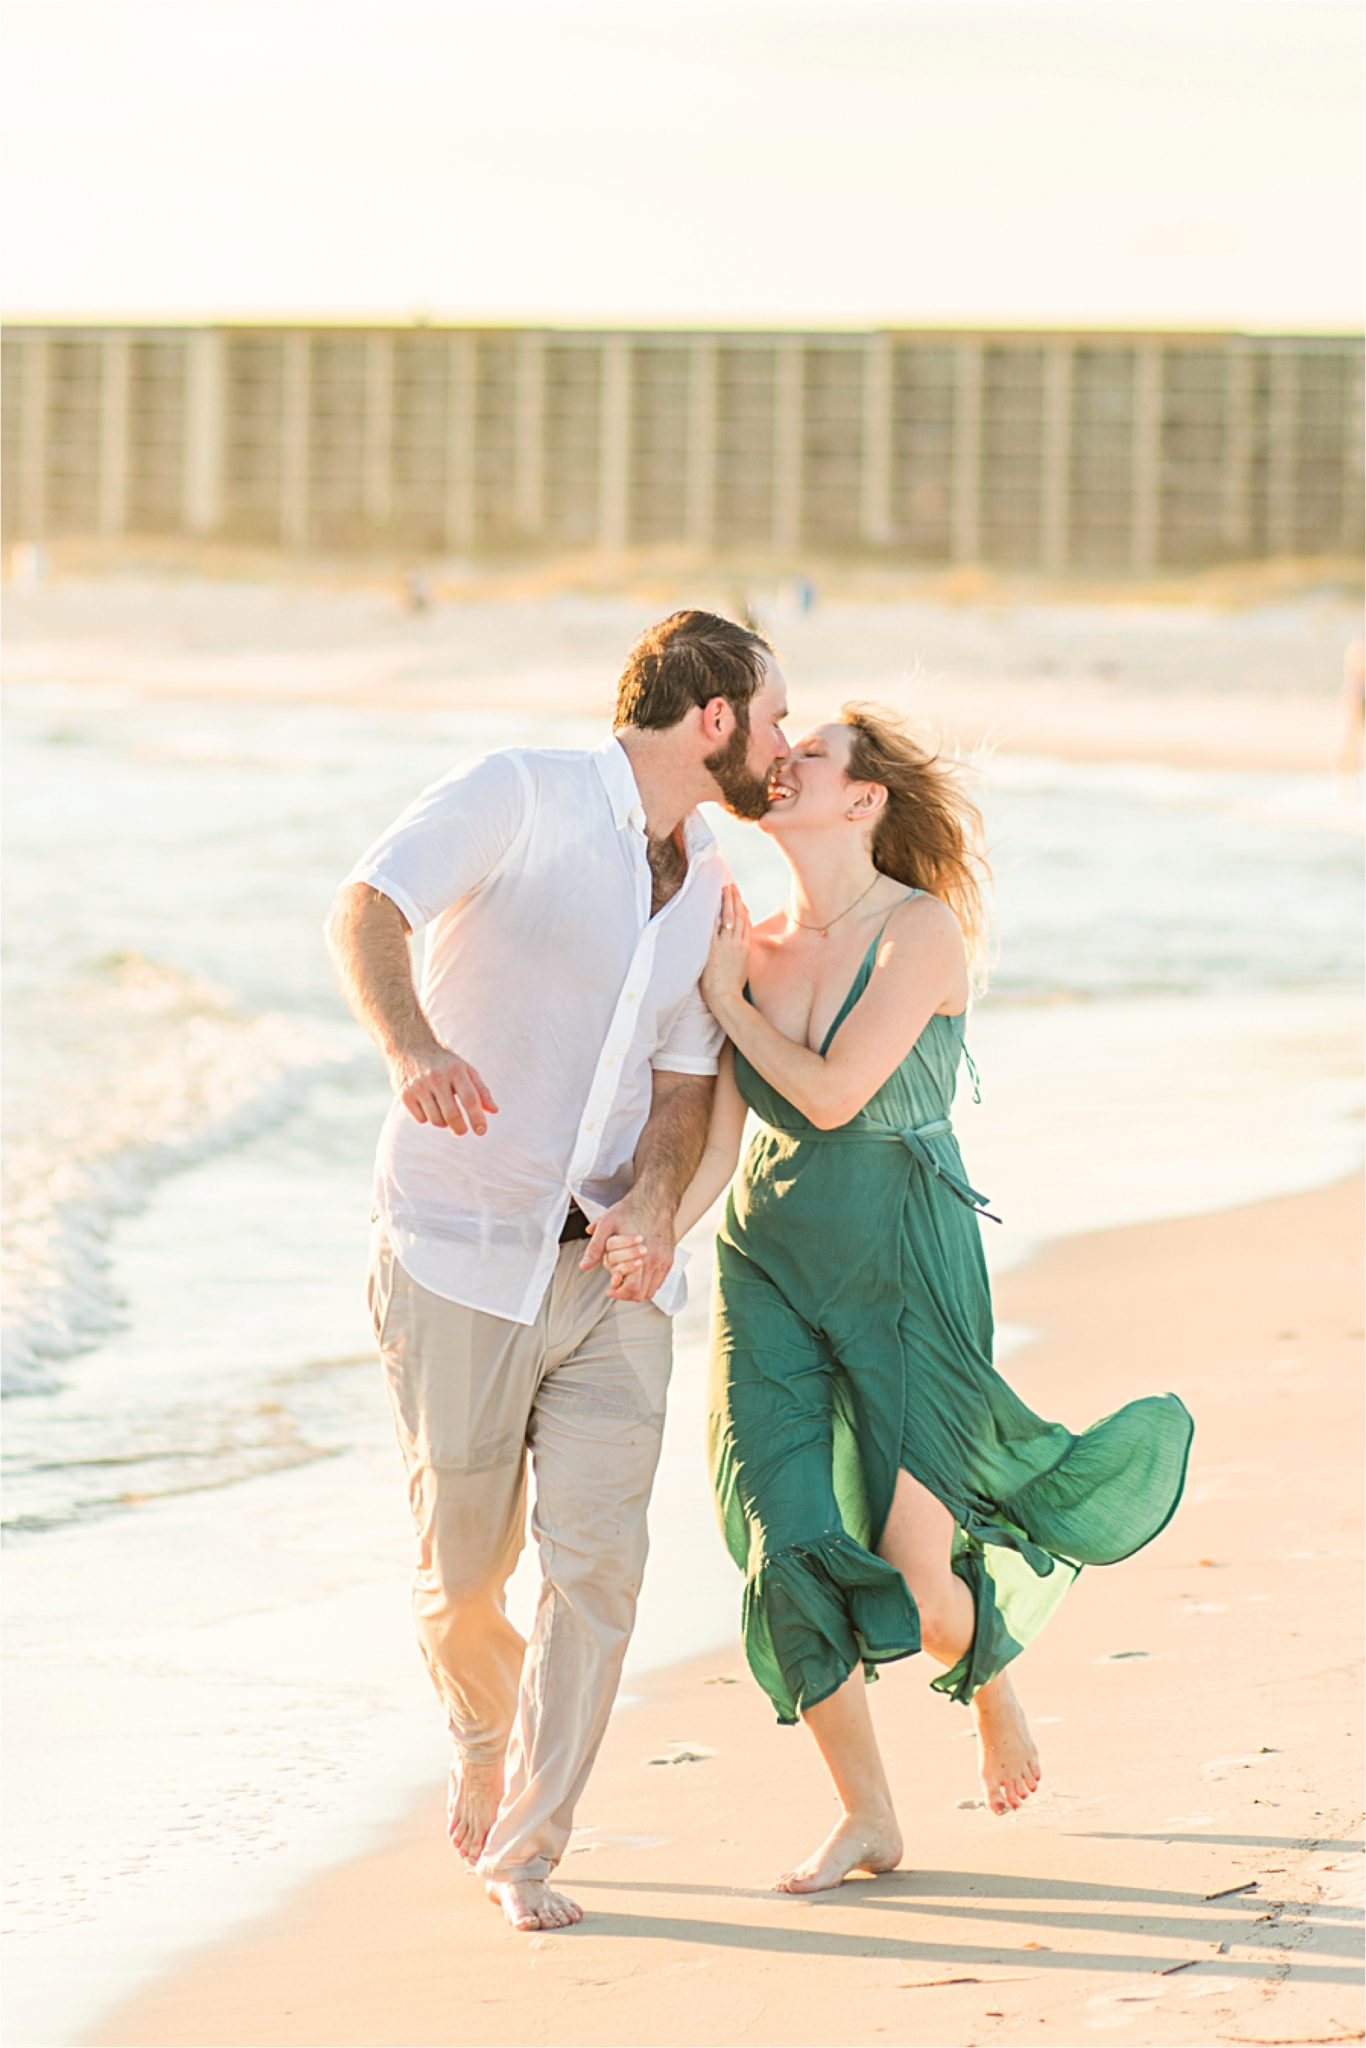 Beach engagement photos, Daulphin Island, Mobile wedding photographer, Candid couples, Romantic engagement shoot inspiration, whimsical engagement shoot